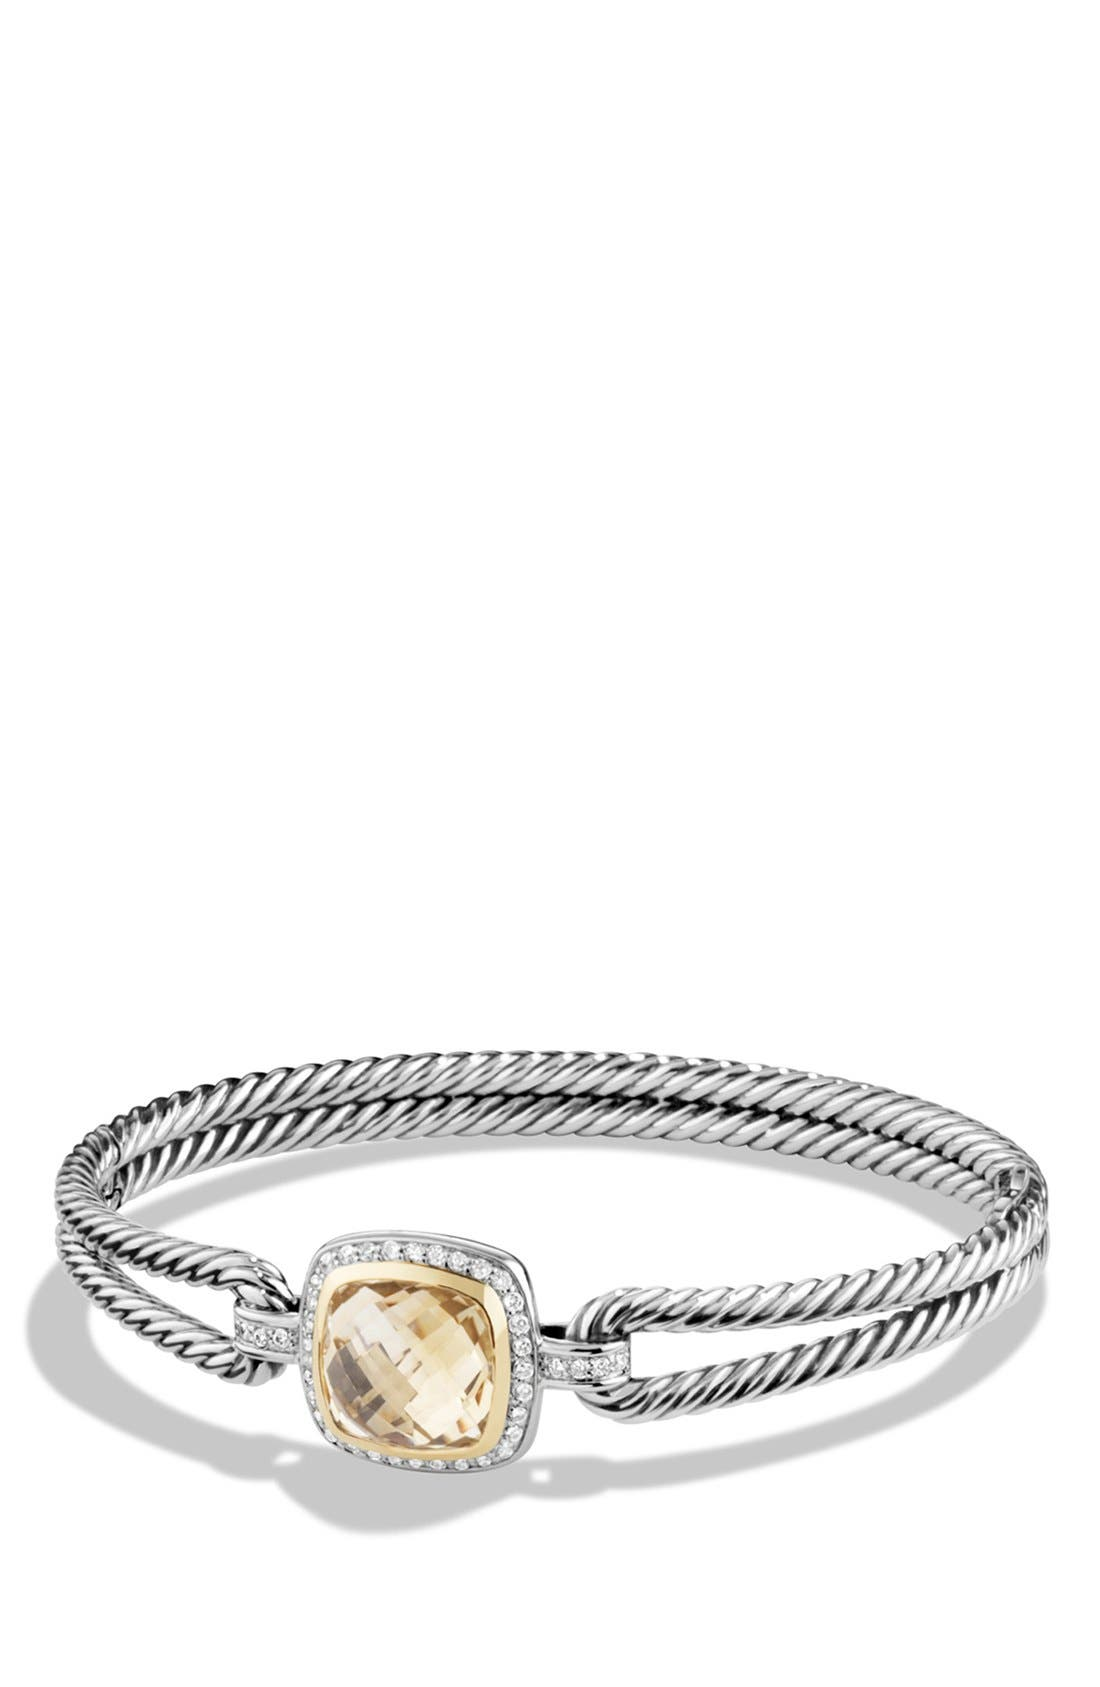 DAVID YURMAN 'Albion' Bracelet with Diamonds and 18K